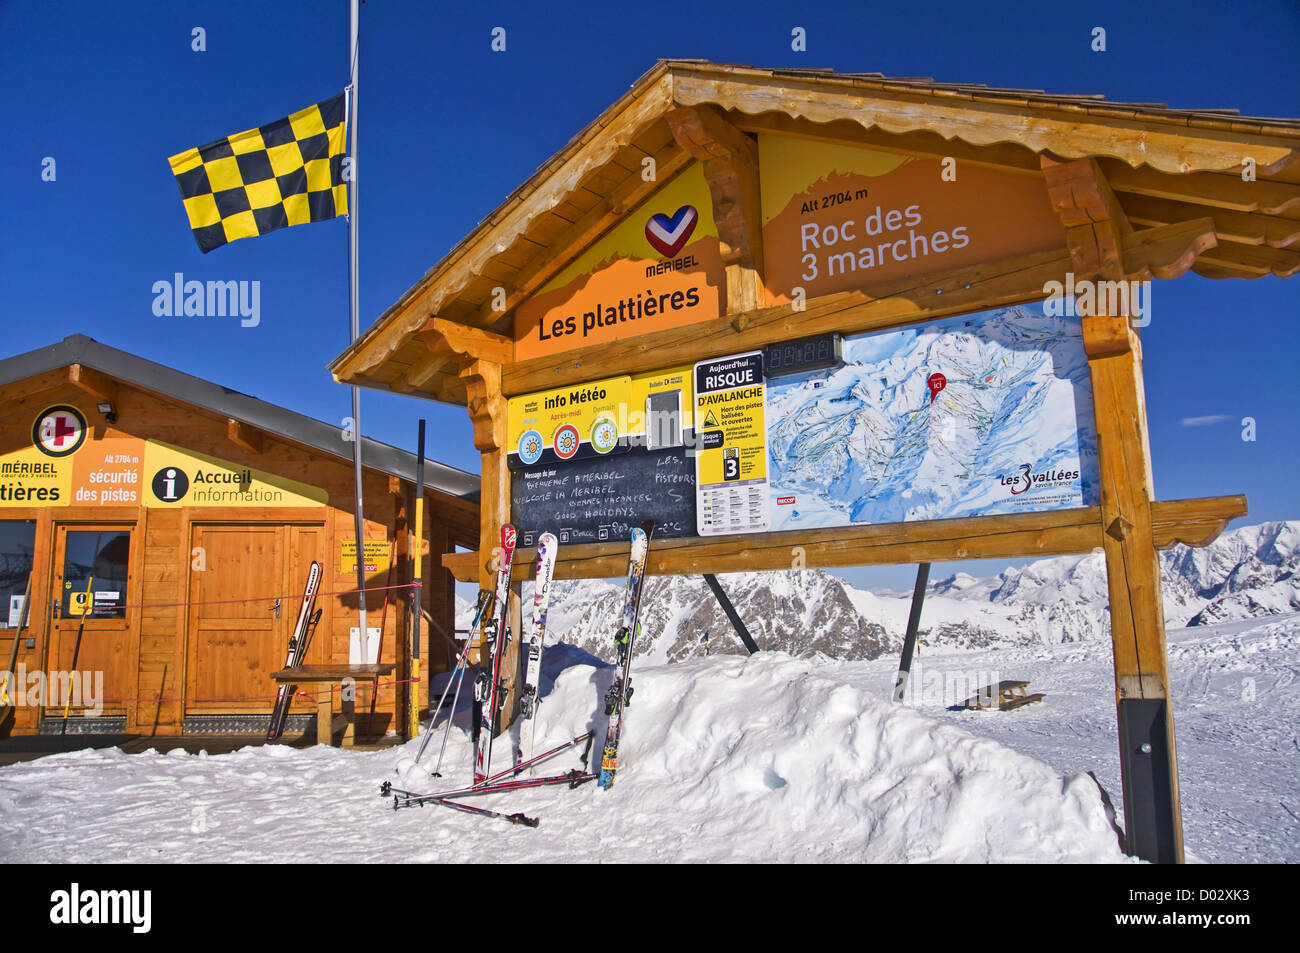 Information map and security cabin at the top of the ski lift snowy